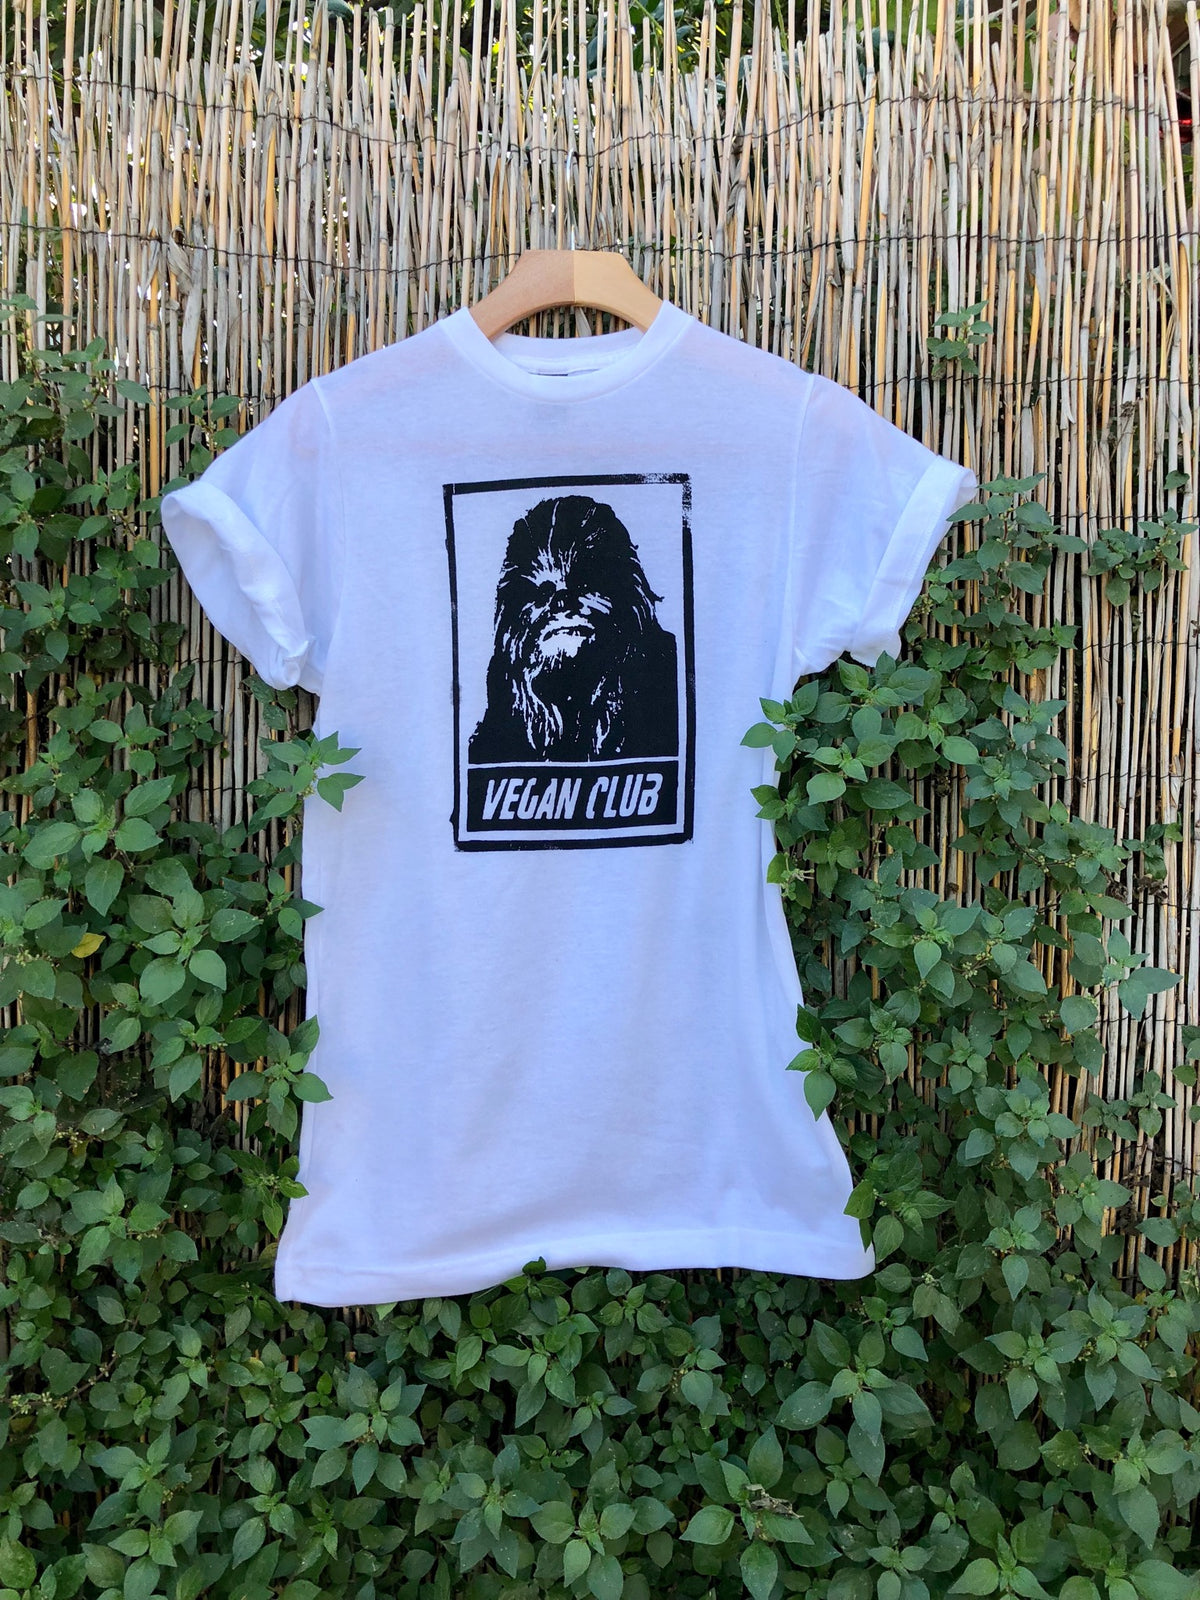 Chewbacca Vegan Club T-shirt